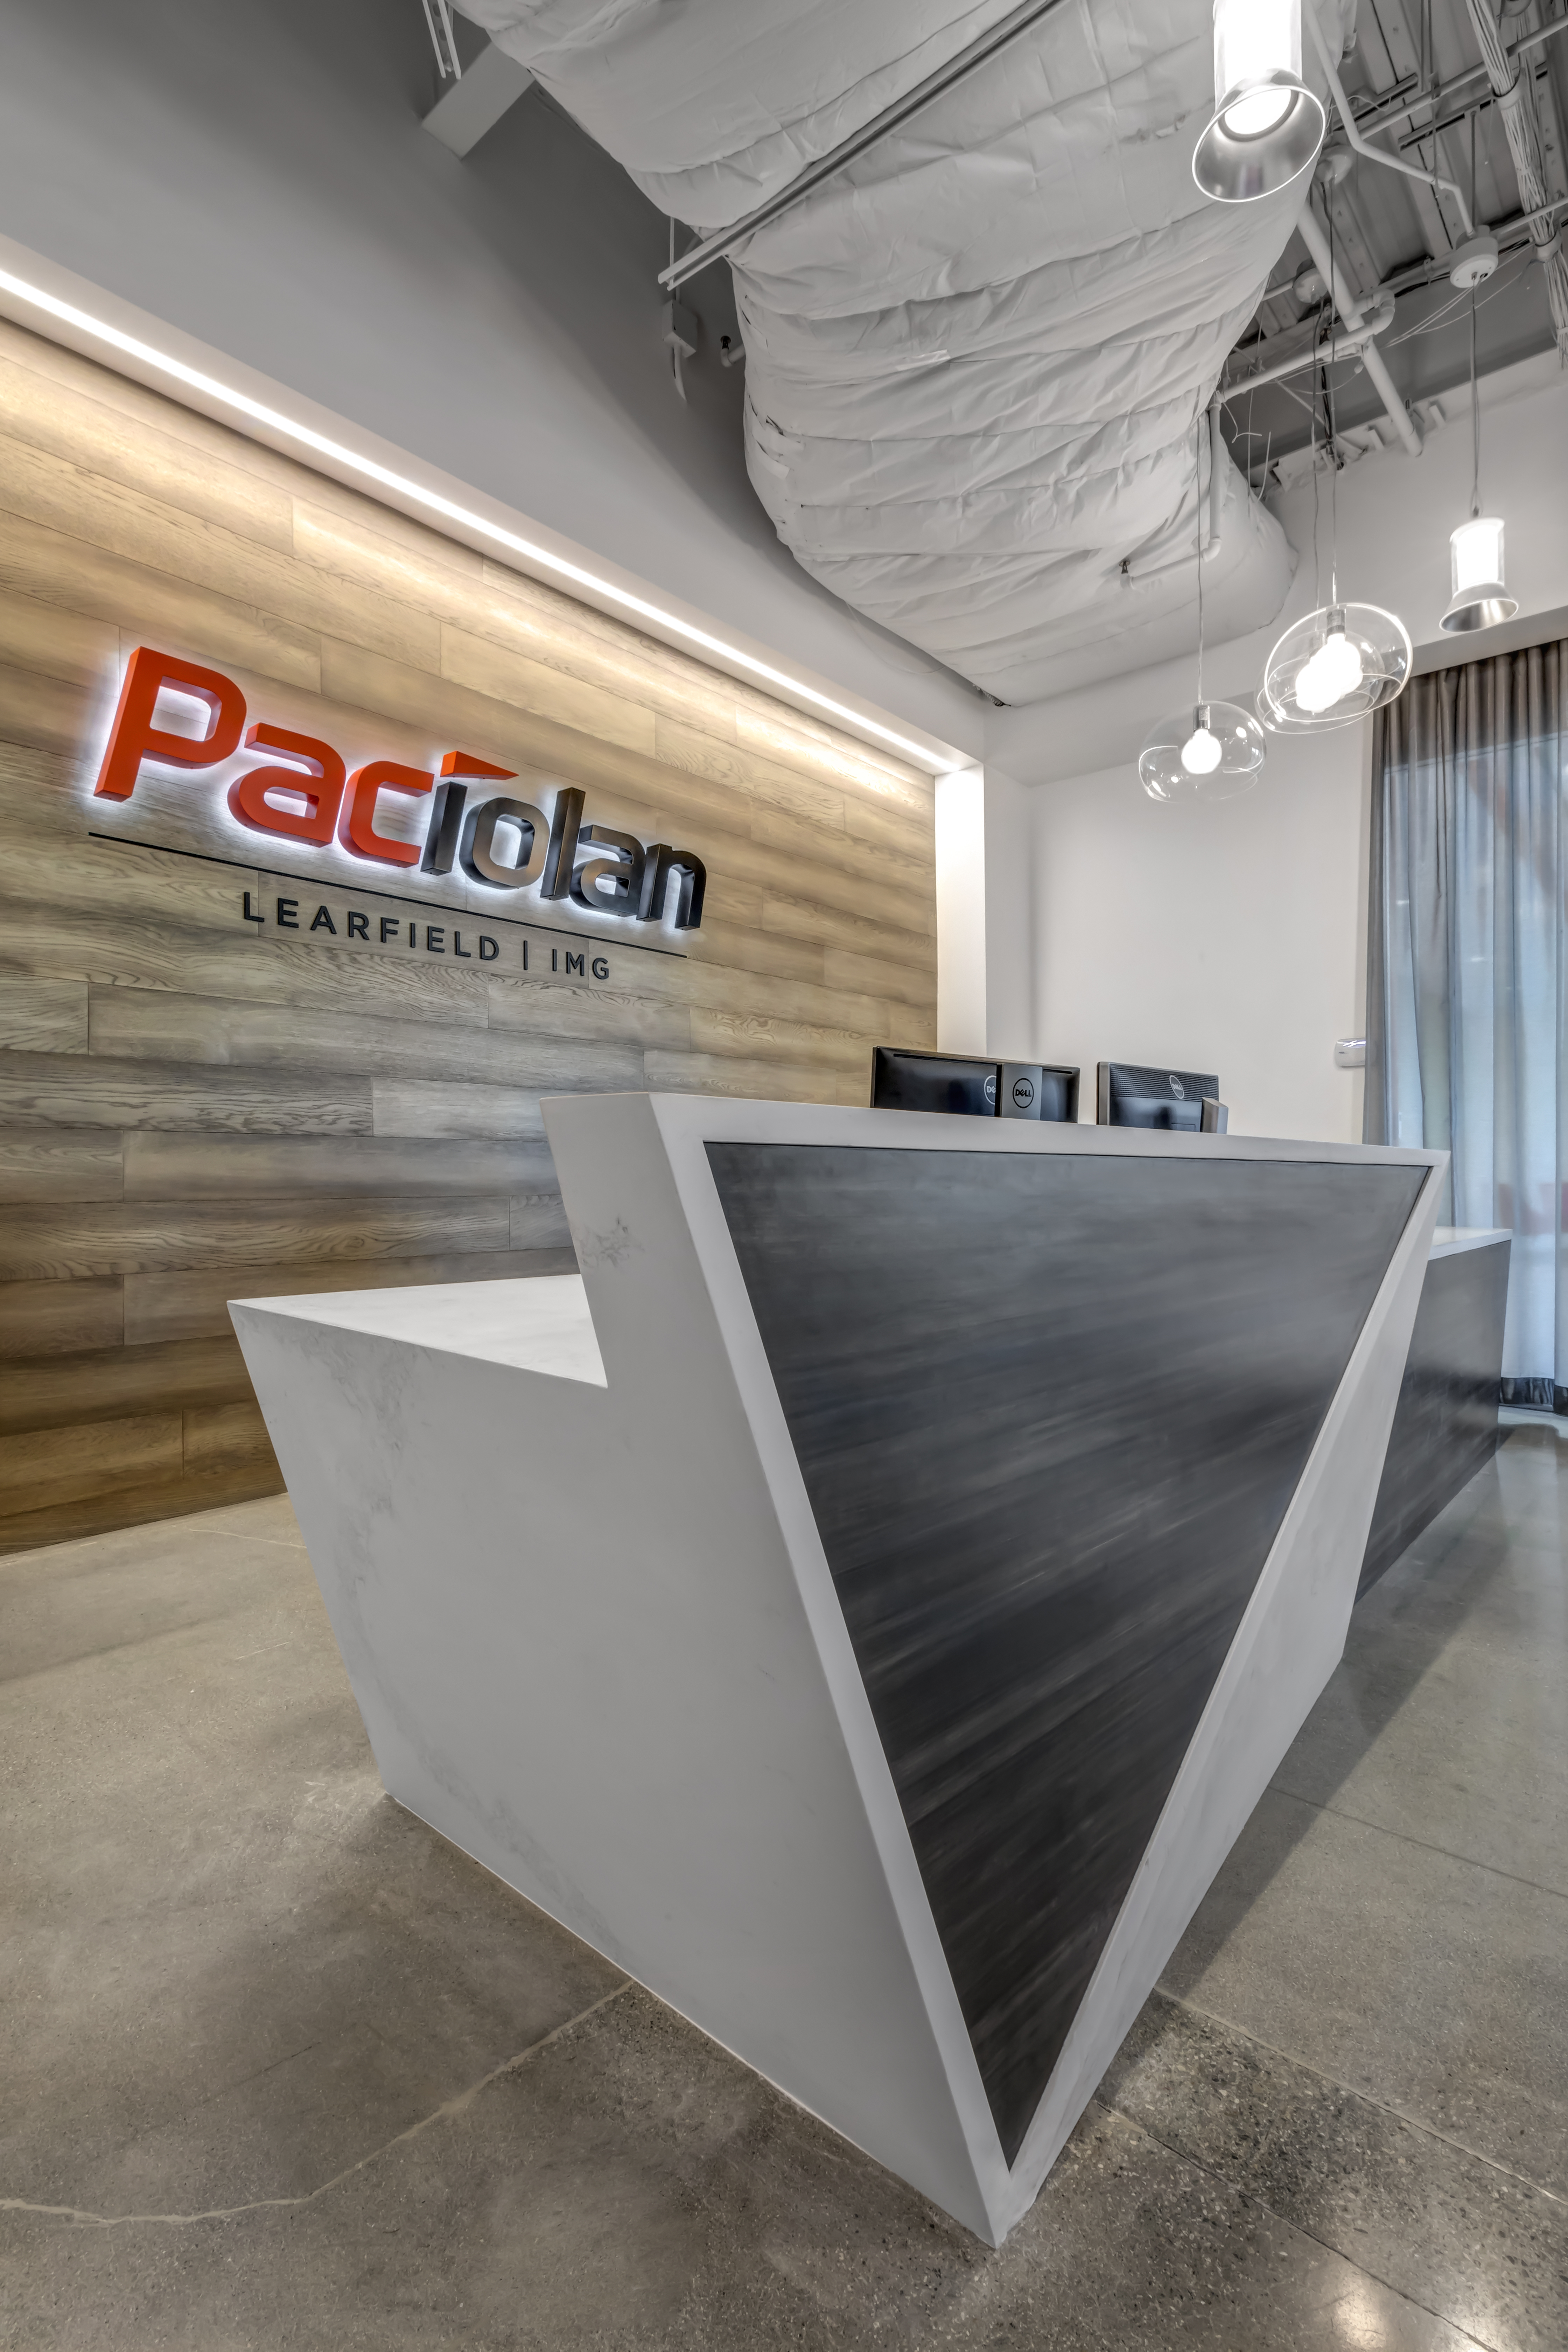 H. Hendy Associates Completes New Corporate Office for Leading Sports & Entertainment Solution Provider, Paciolan